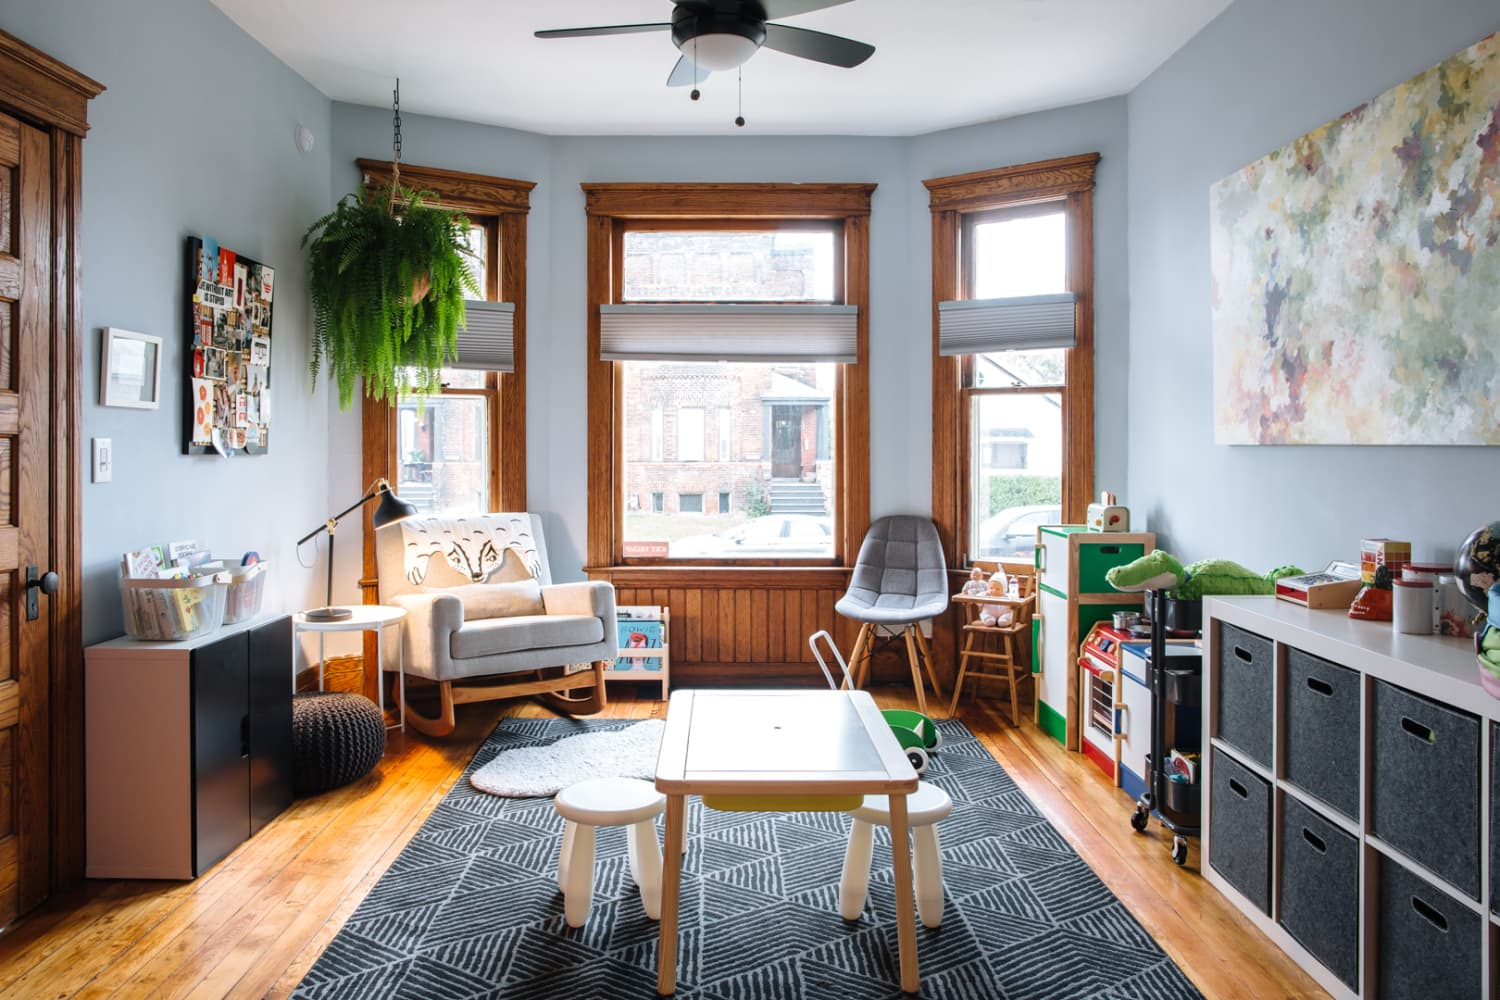 """The """"10 Things"""" Rule Keeps My House Uncluttered, Even with a Family of Six"""